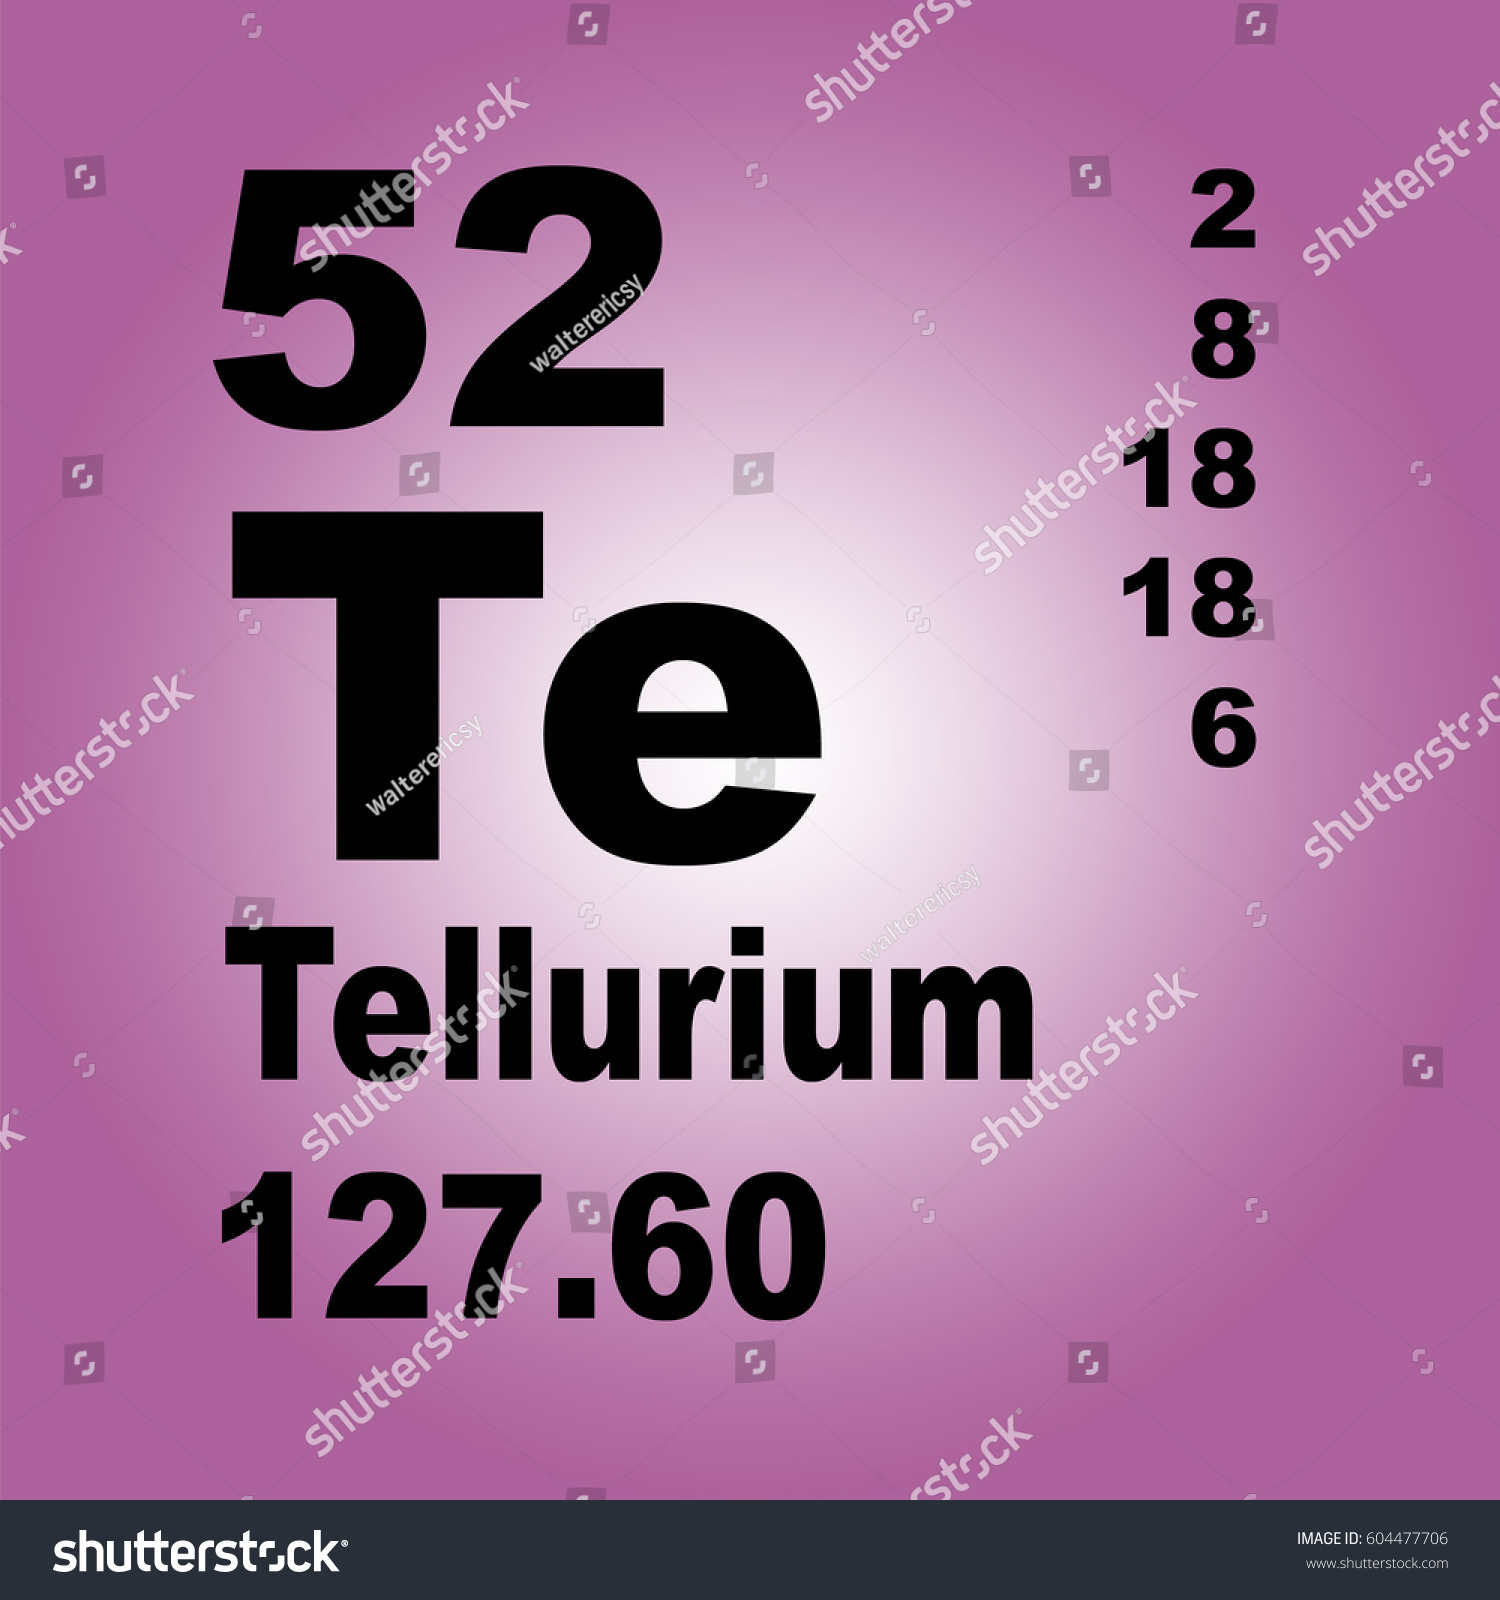 Tellurium on the periodic table images periodic table images tellurium on the periodic table images periodic table images tellurium periodic table elements stock illustration 604477706 gamestrikefo Choice Image